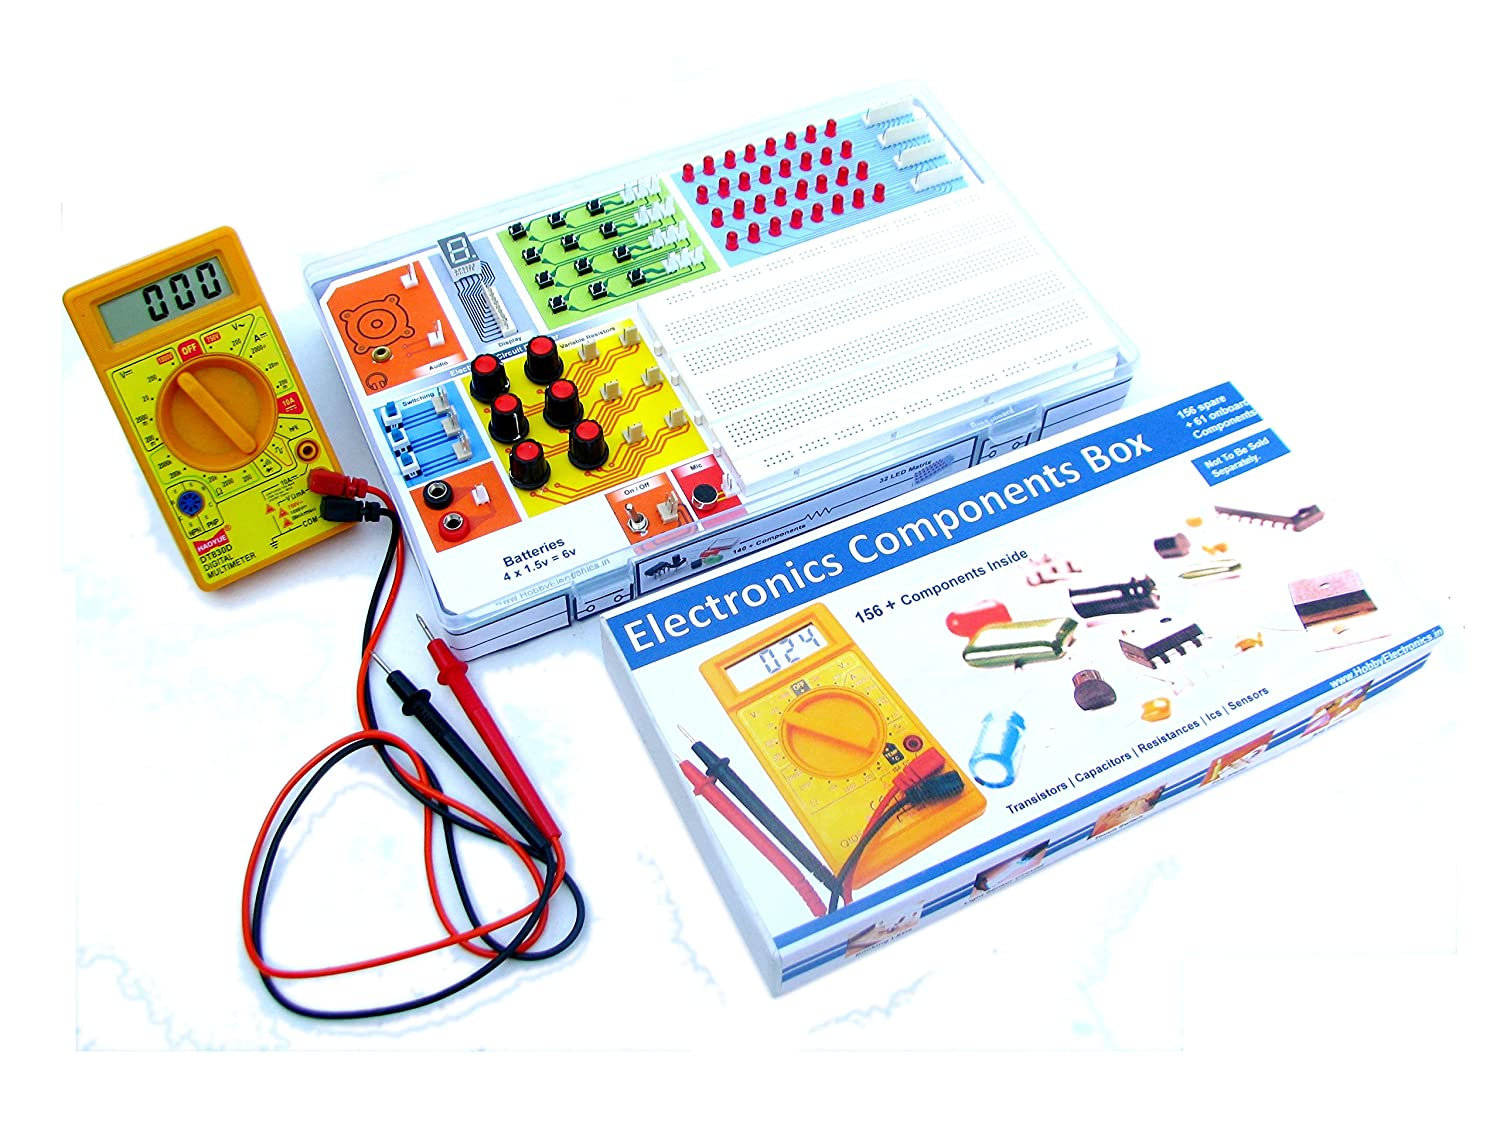 Electronics Project Kit 60 In 1 Circuits Ne555 Melody Circuit Projects